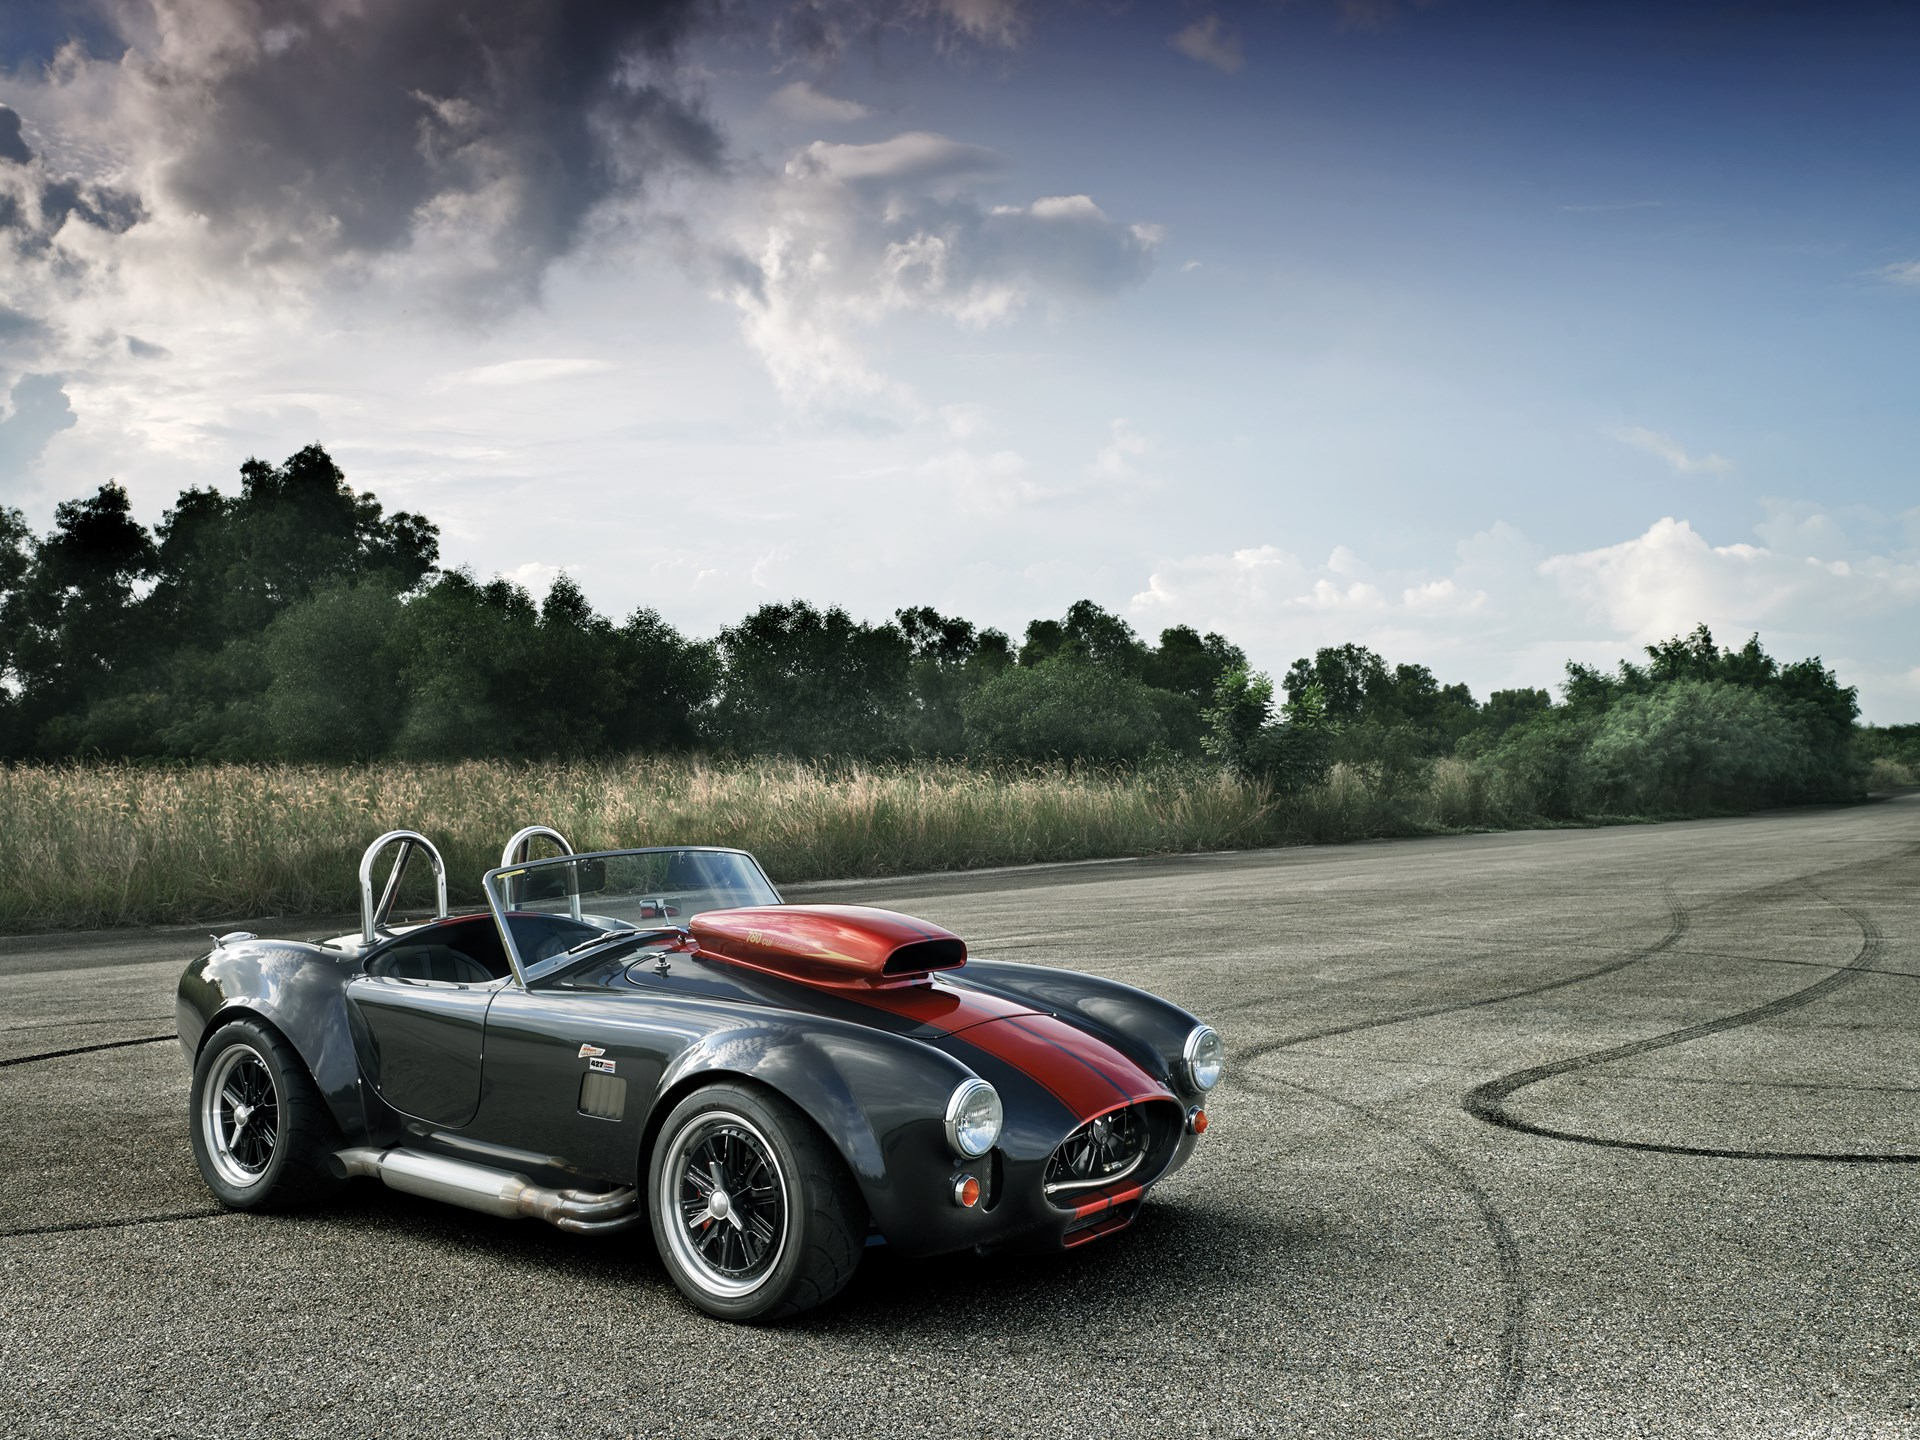 Weineck Cobra 760 CUI 14 Record-Setting Supercars That Made an Impression